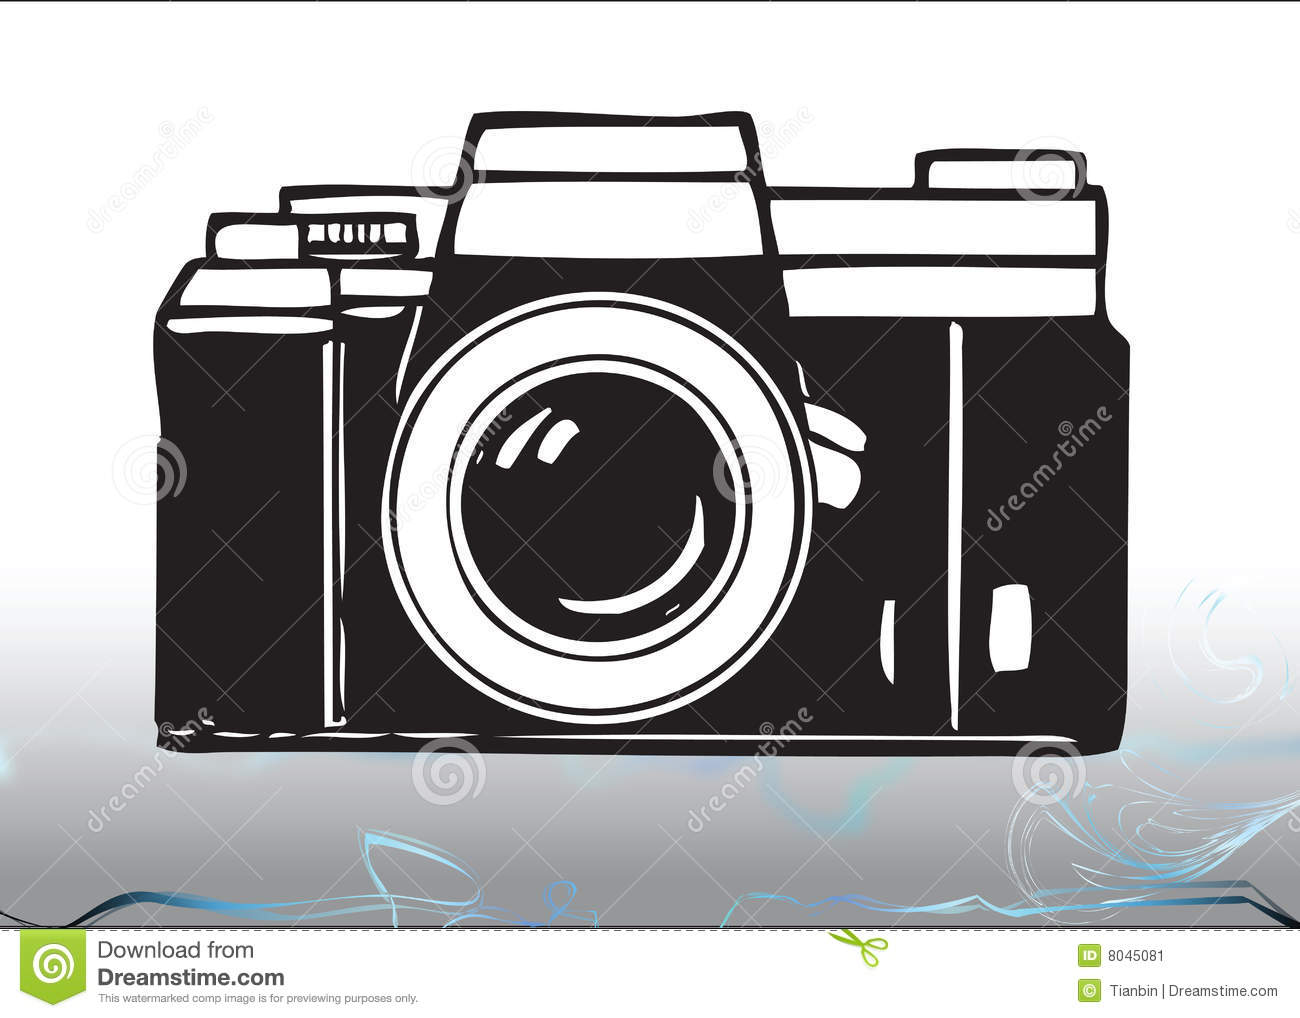 An illustration of a 35mm camera in black and white. .